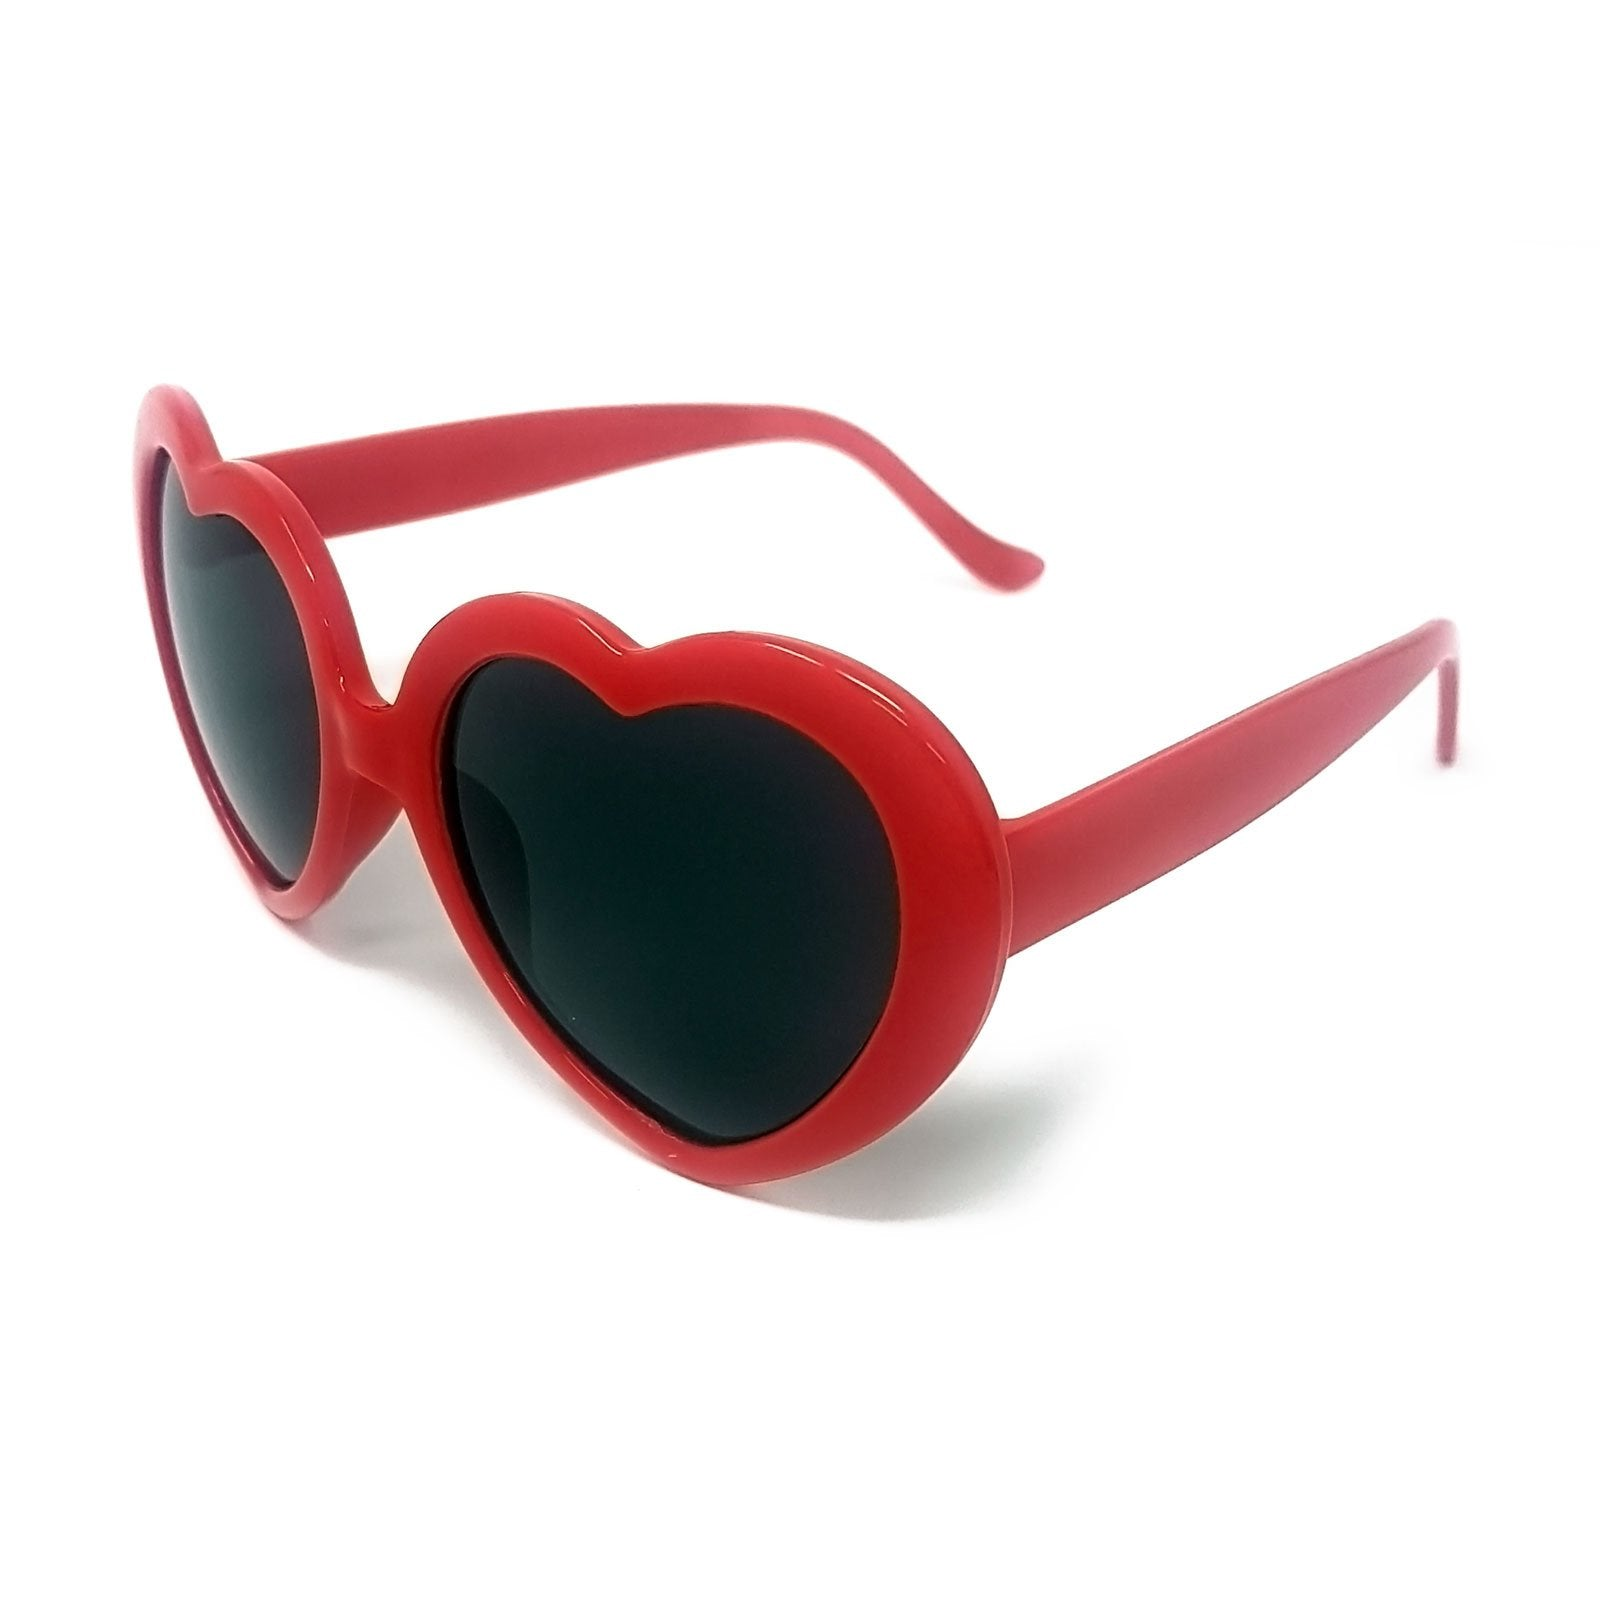 Wholesale Heart Shape Sunglasses - Red Frame, Black lens